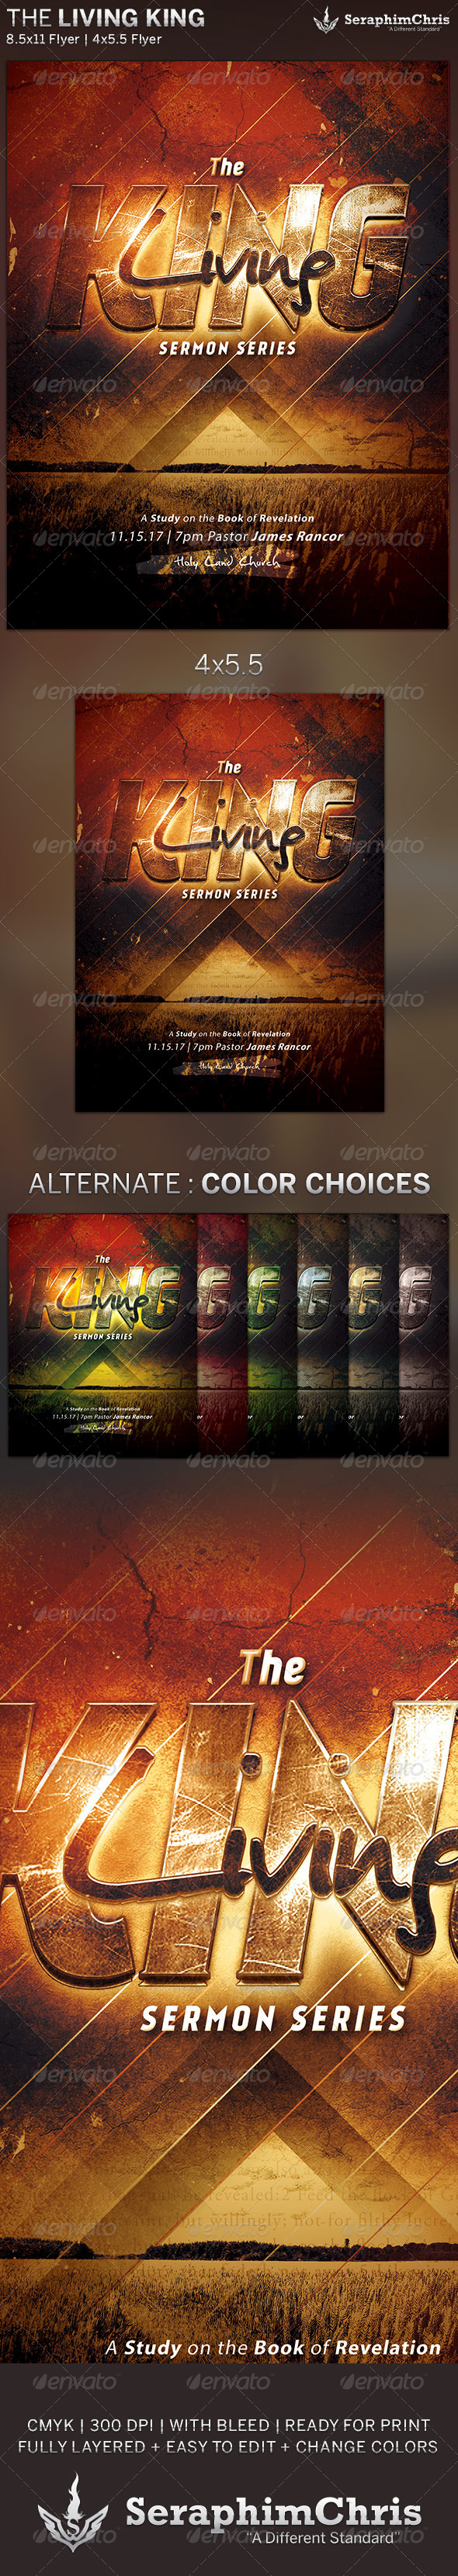 GraphicRiver The Living King Church Flyer Template 5728161